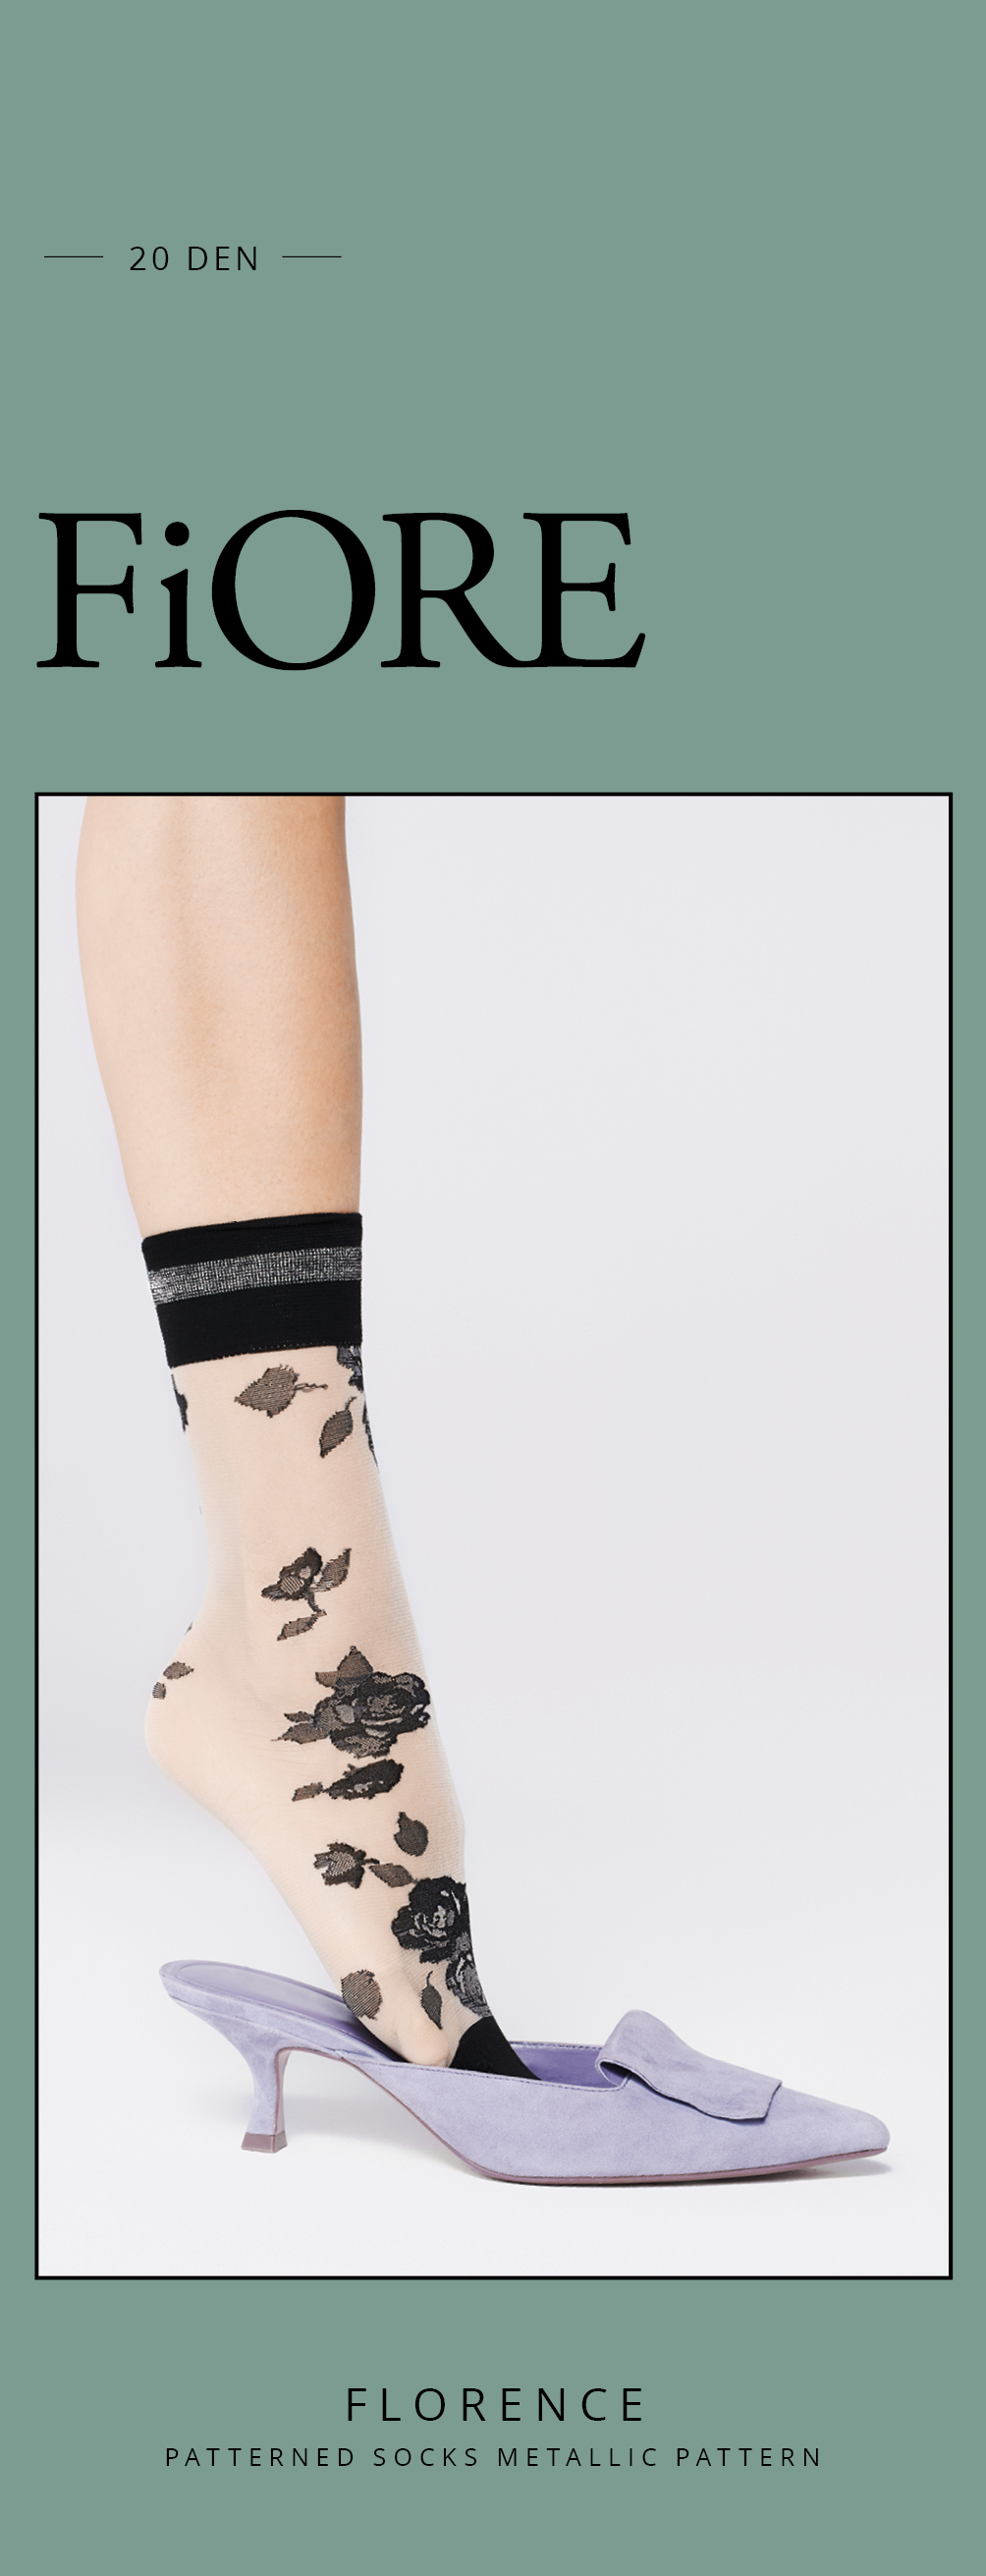 Fiore: Black Rose of Florence Trouser Socks SOLD OUT